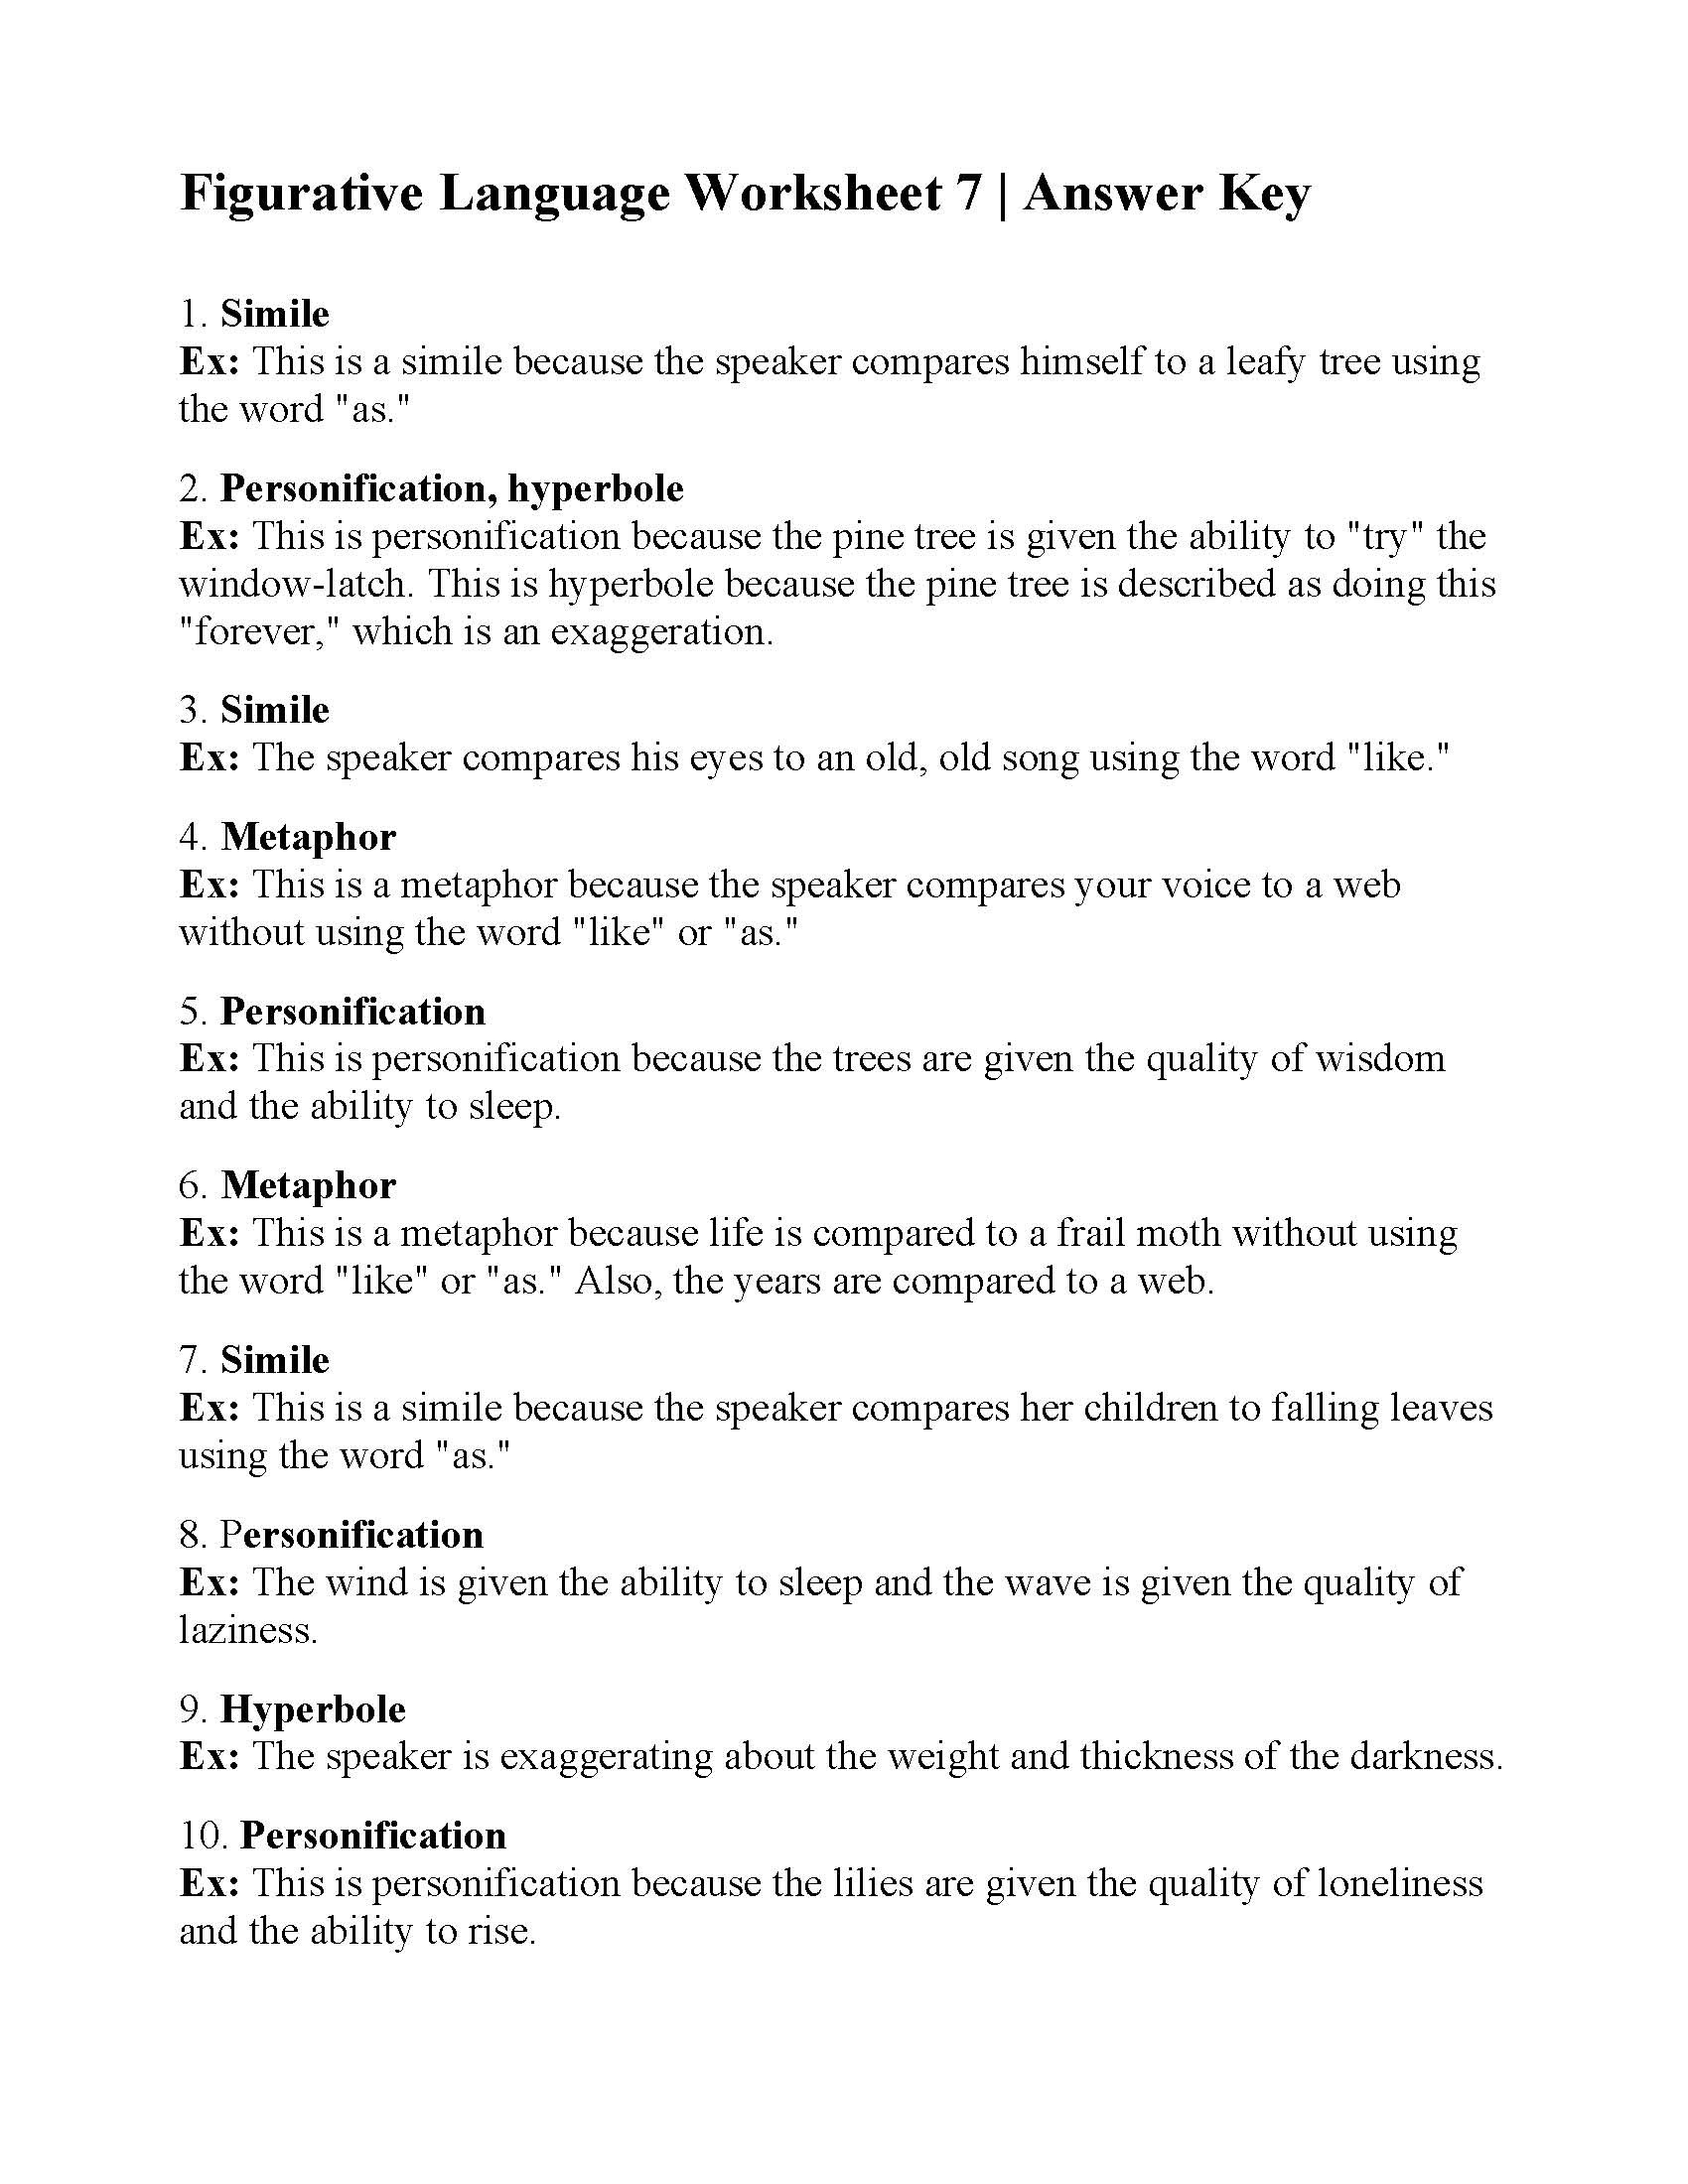 Figurative Language Worksheets 5th Grade Figurative Language Worksheet Answers Printable Worksheets